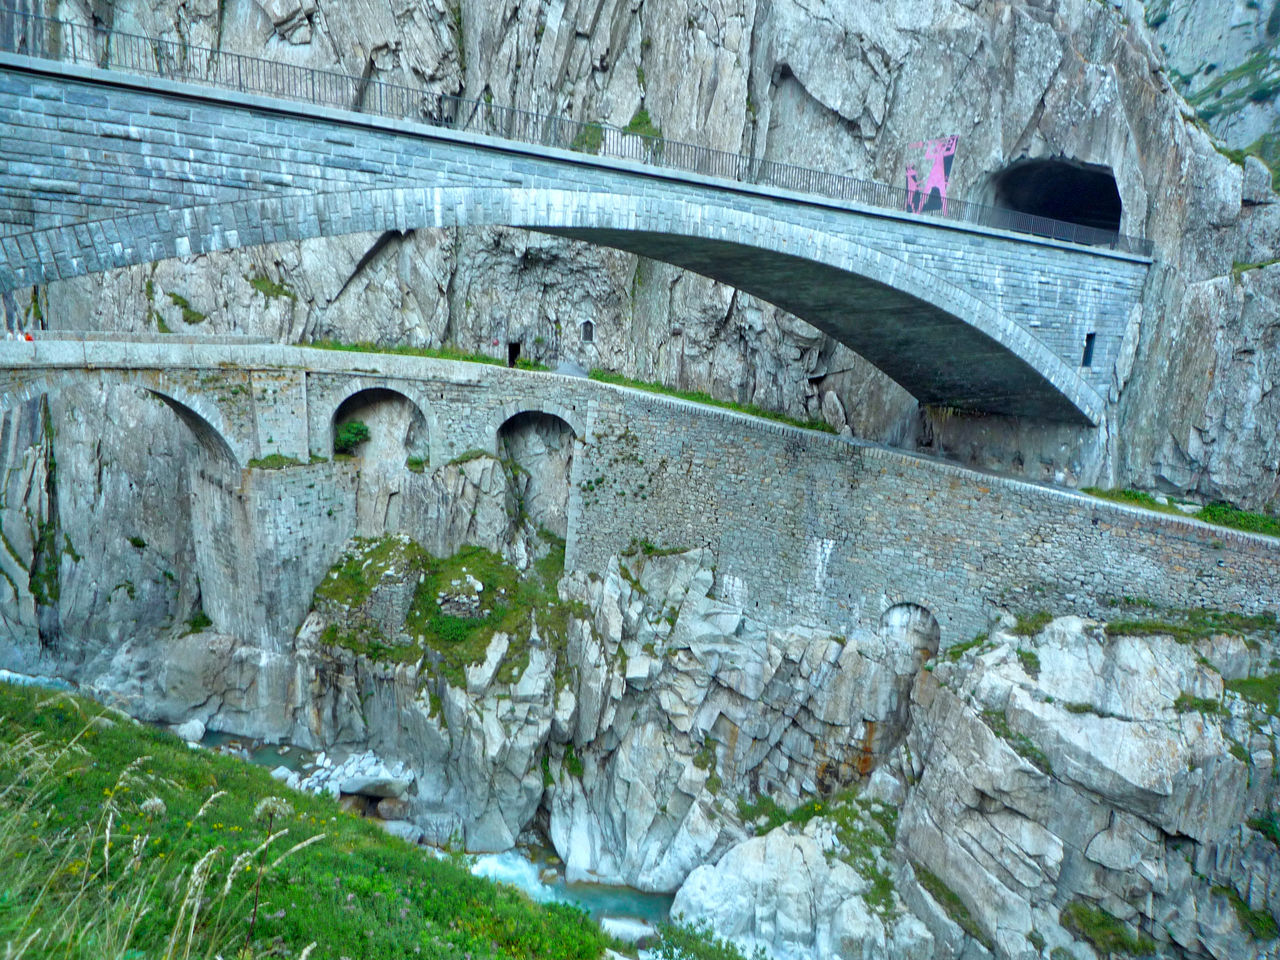 Ancient Arch Architecture Beauty In Nature Bridge Day Historic Mountain Nature No People Old Outdoors Rock Rock - Object Rock Formation Stone Bridge Viadukt